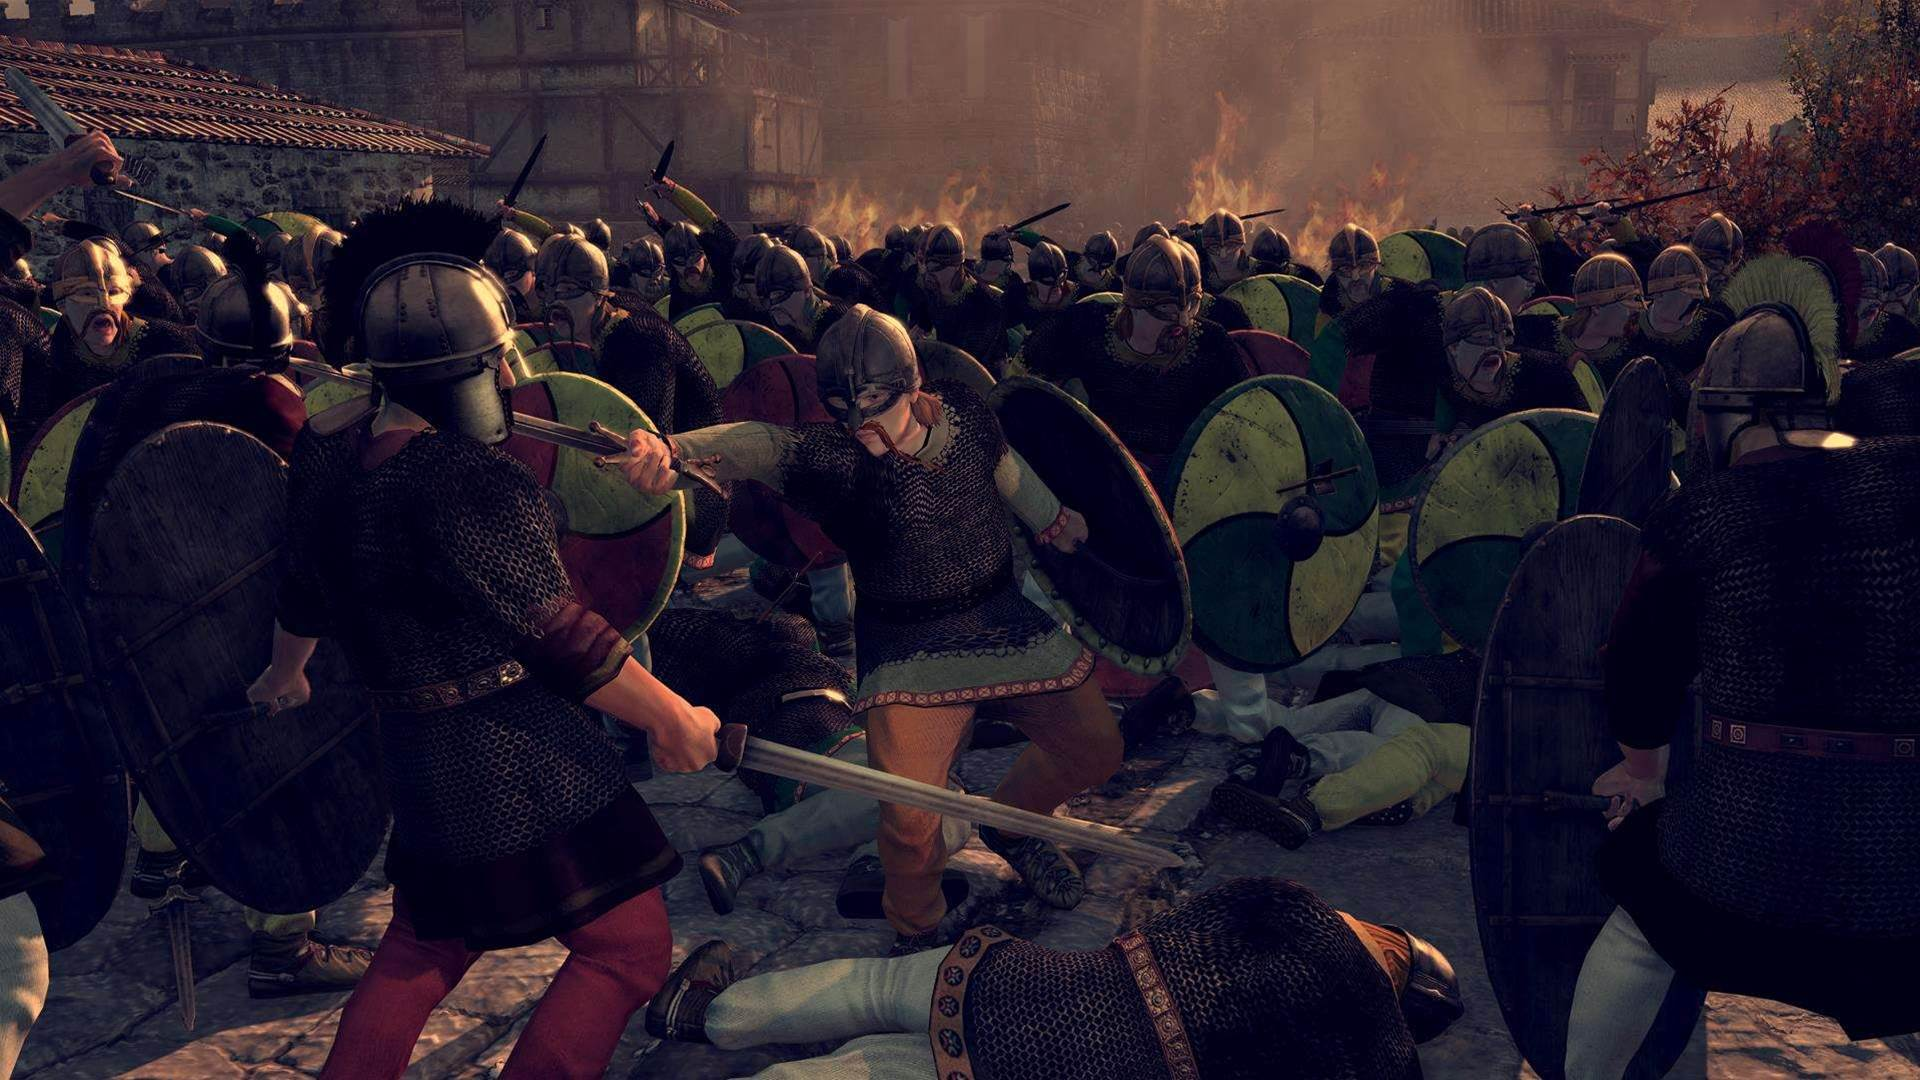 New Attila Total War trailer shows more in-game action